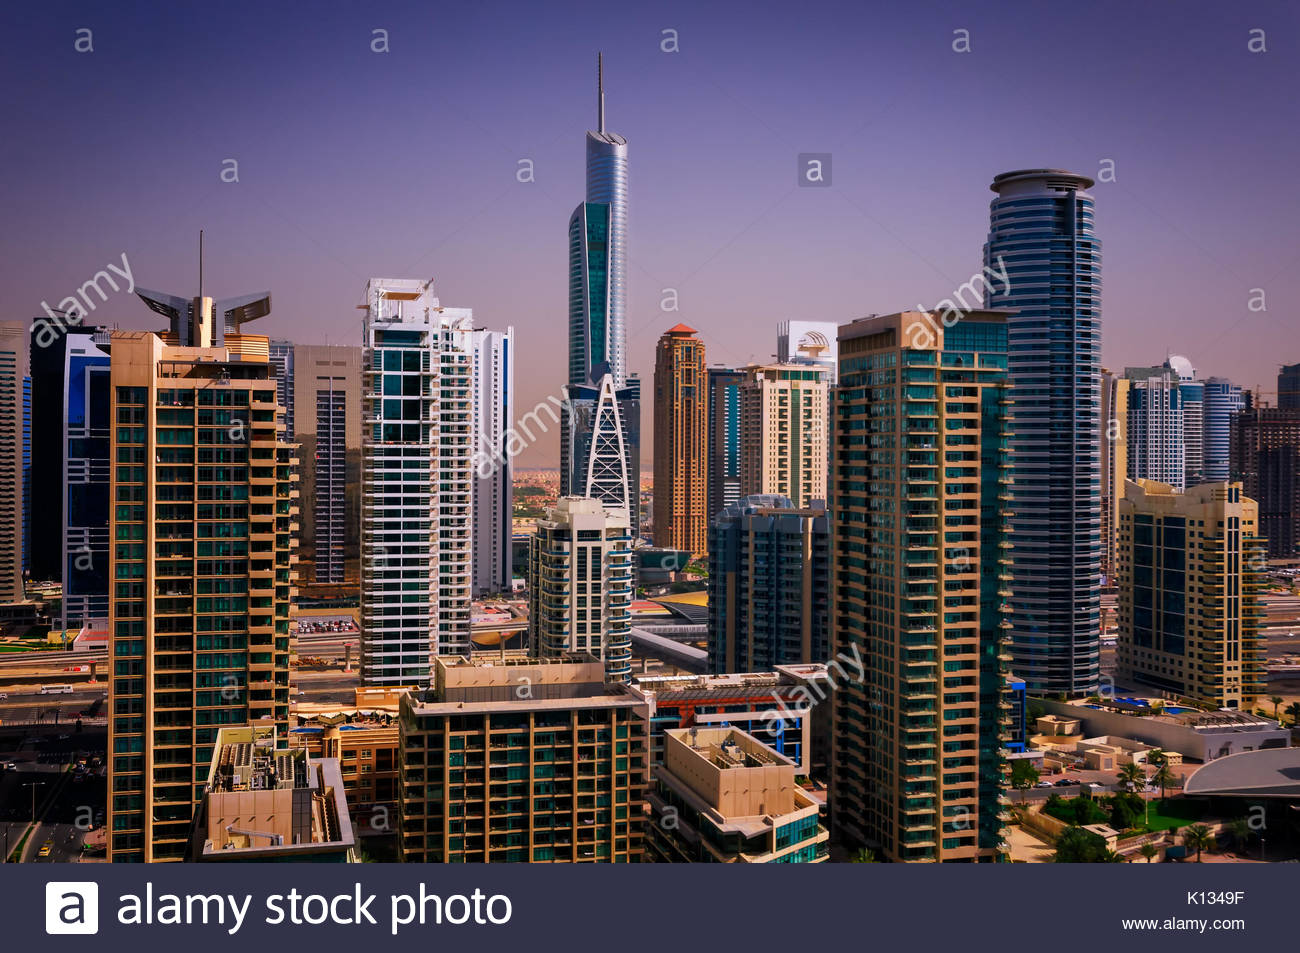 Amazing colorful dubai marina skyline with water canal and expensive yachts during sunny day, Dubai, United Arab - Stock Image